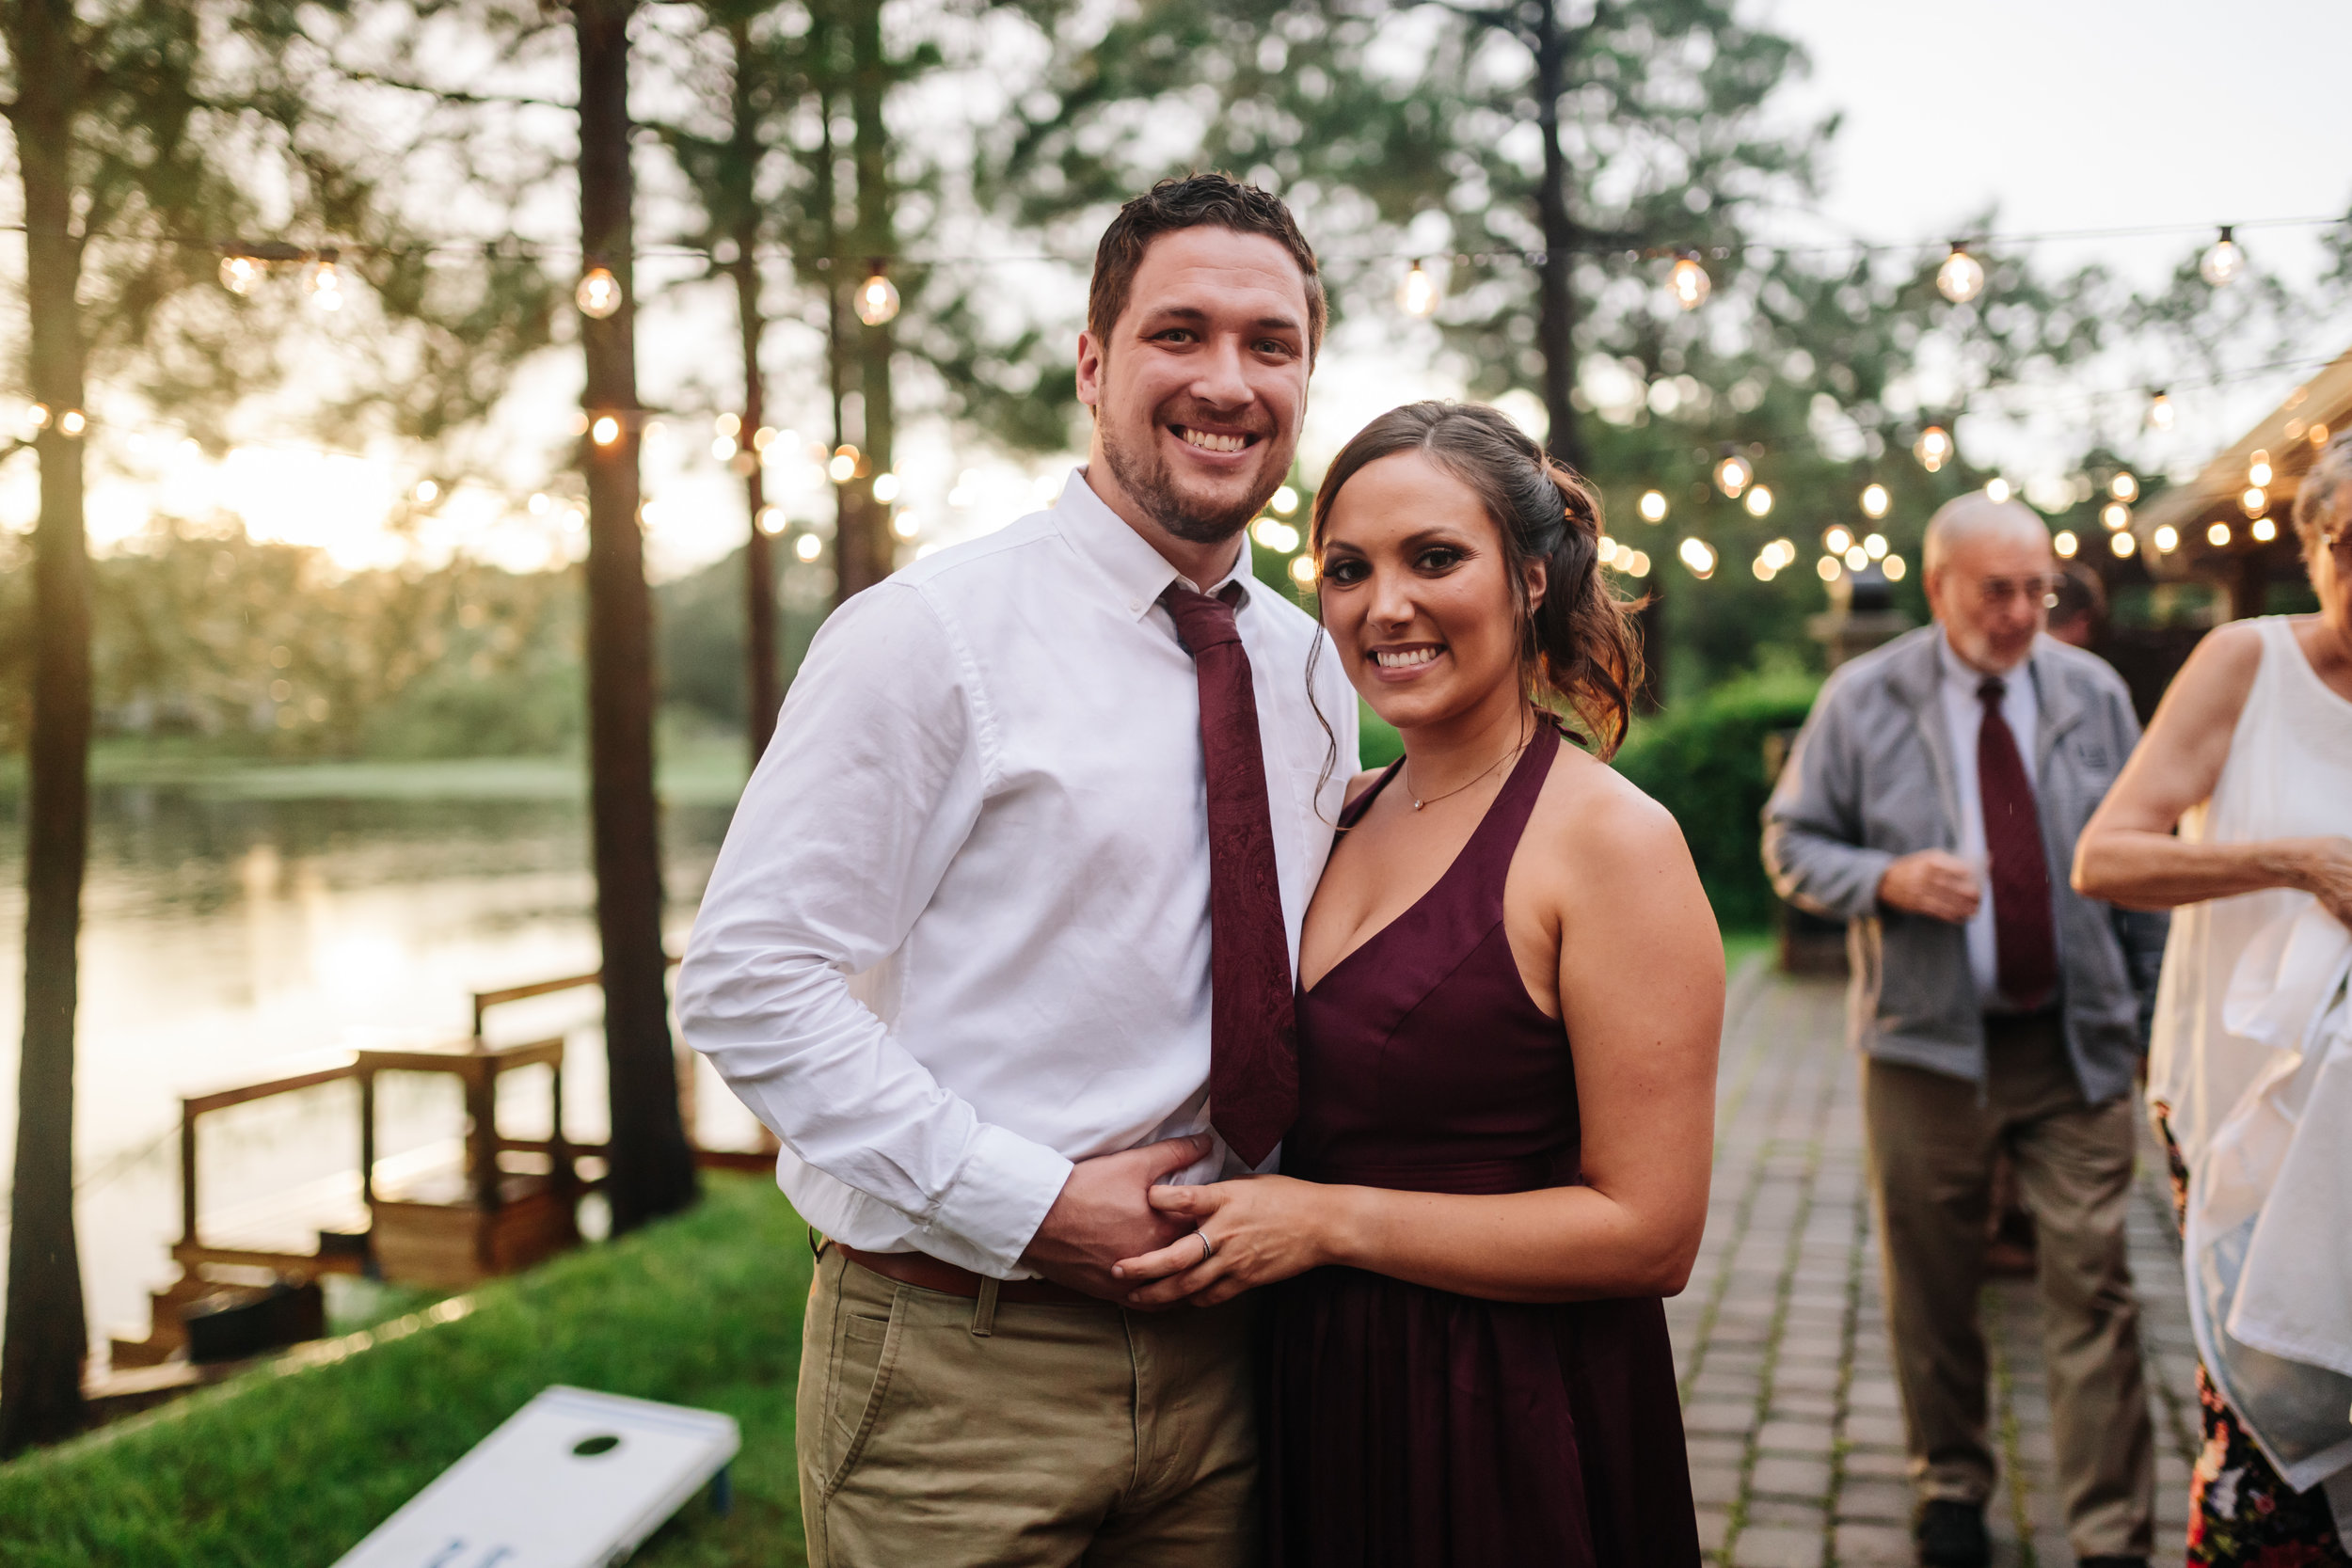 2018.07.28 Brooke and Korey Arnold Winter Springs Wedding FINALS-659.jpg